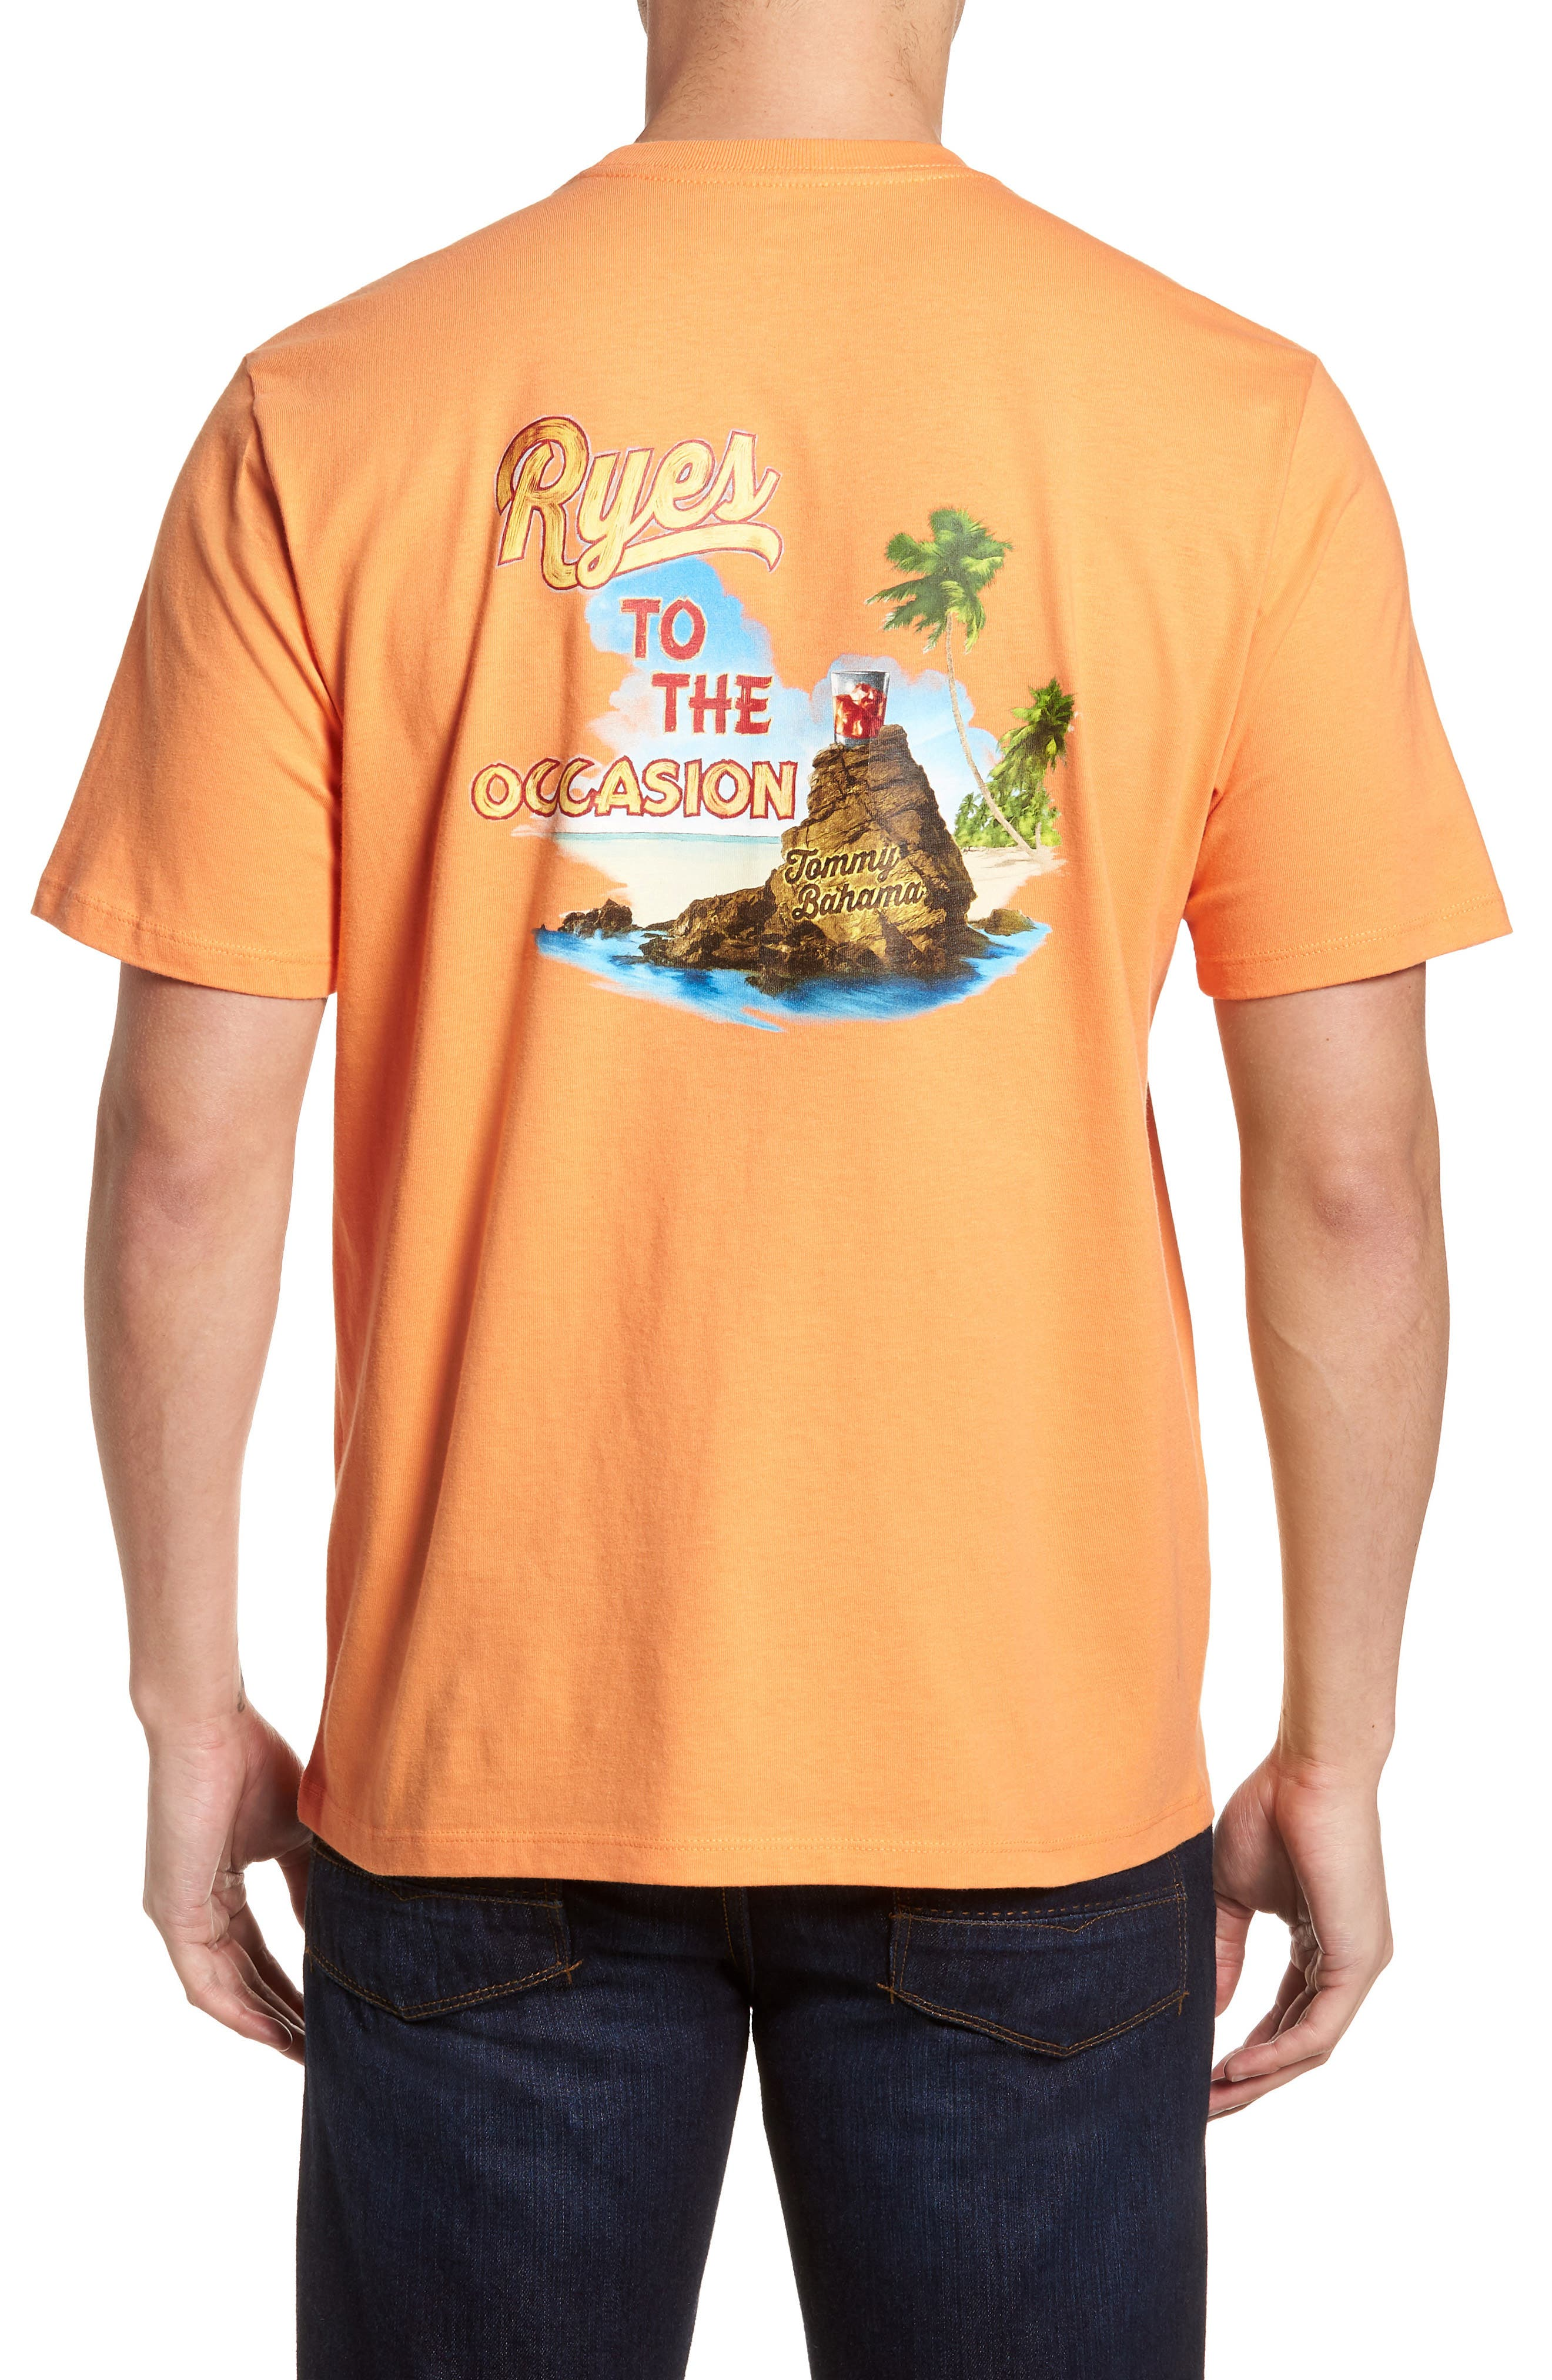 Ryes to the Occasion T-Shirt,                             Alternate thumbnail 2, color,                             Bright Apricot